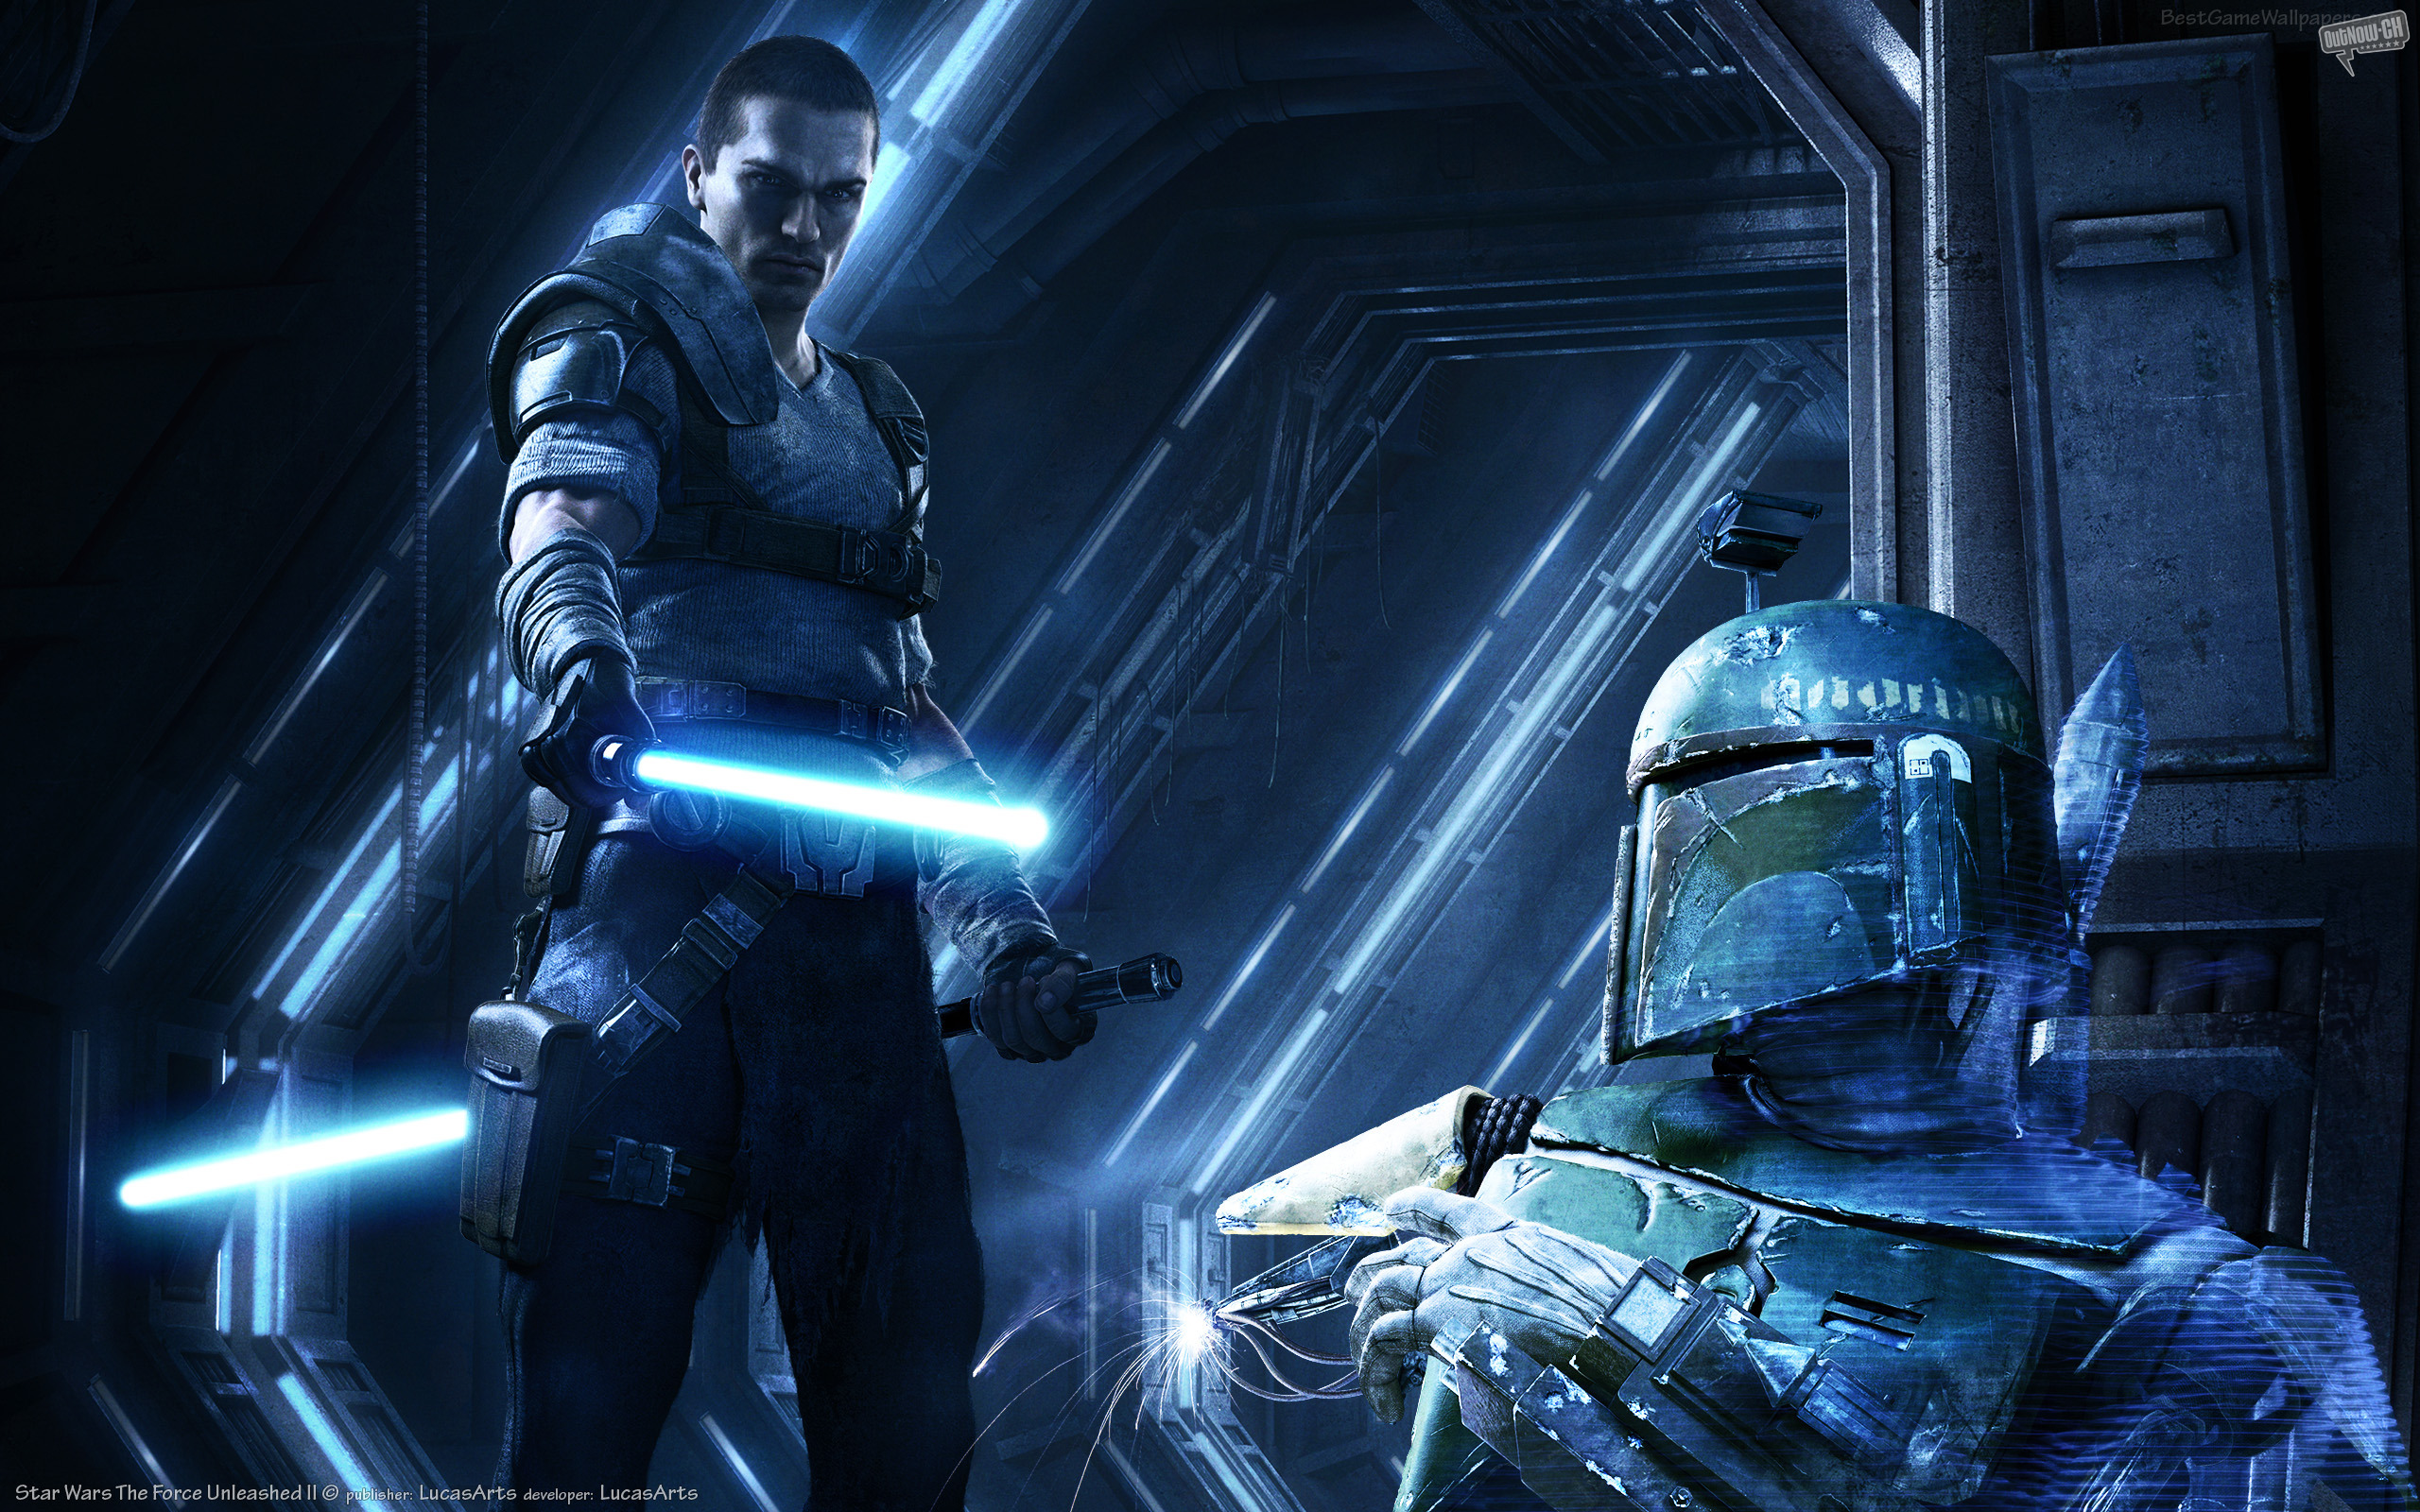 Gameboy Iphone X Wallpaper Star Wars Force Unleashed 2 Wallpapers Star Wars Force